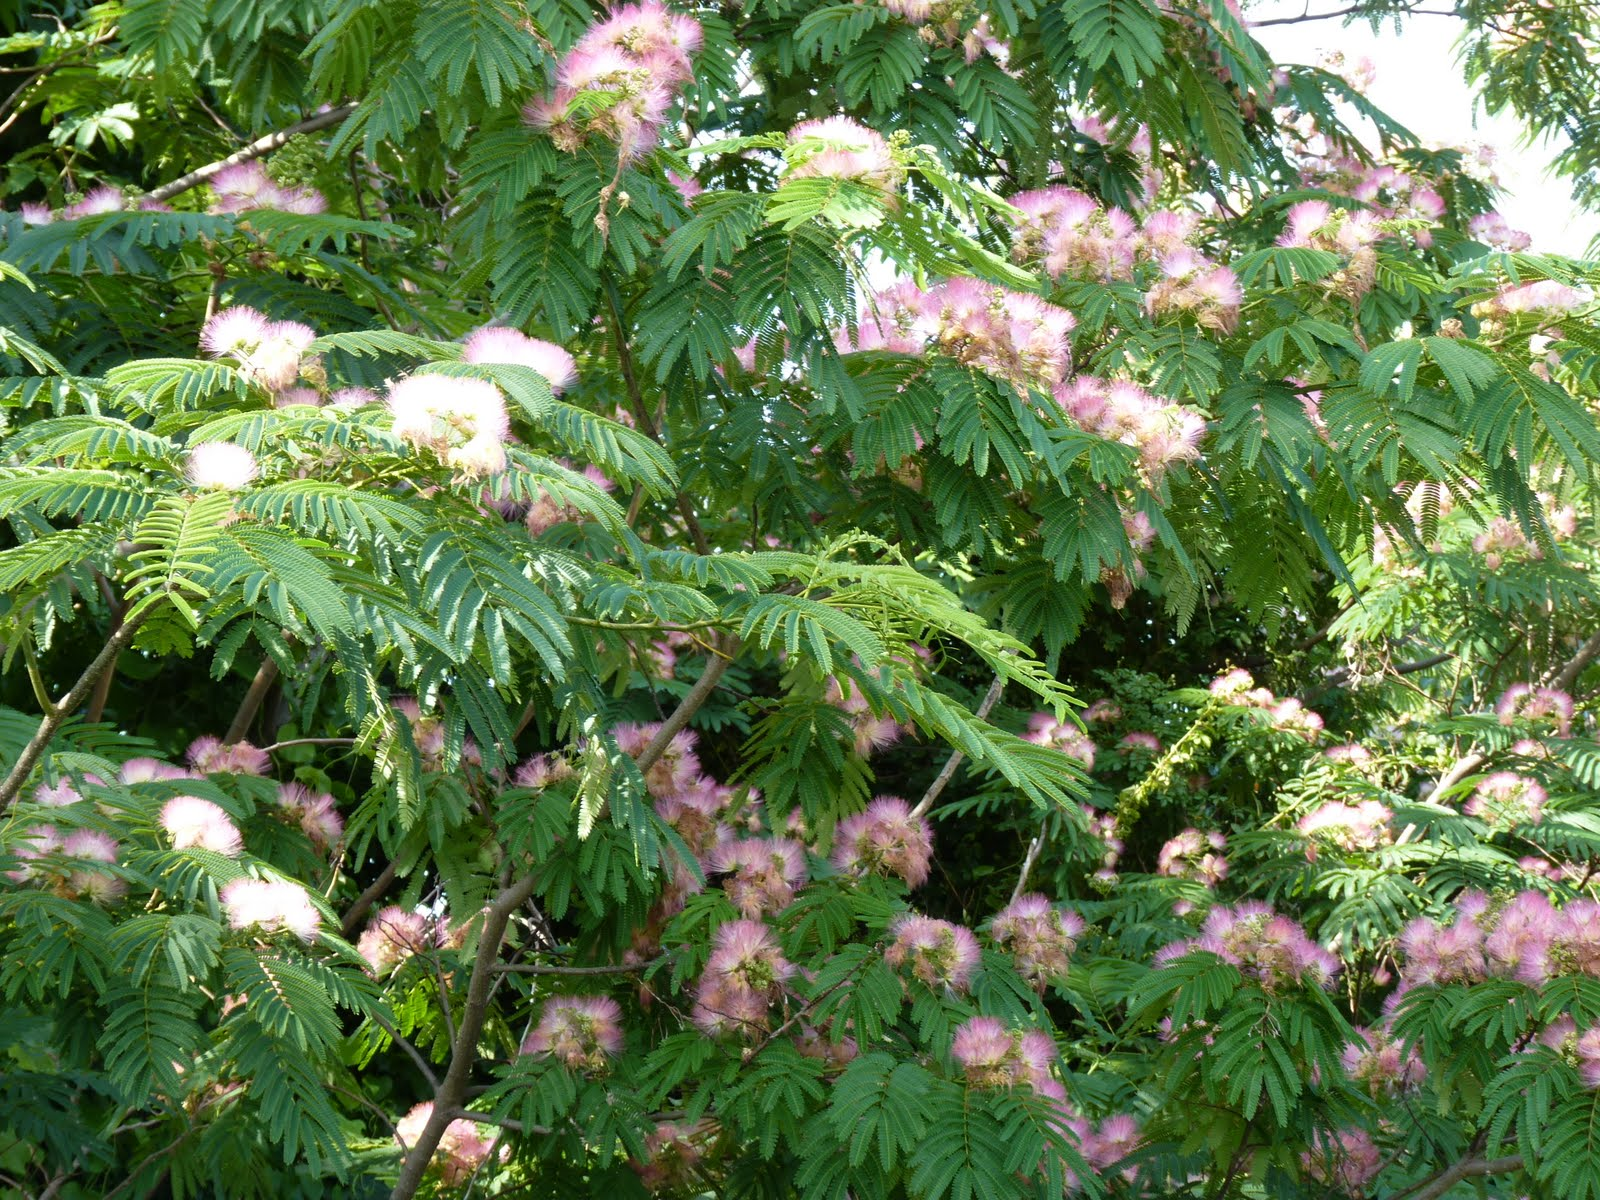 Fern like tree with pink flowers gallery flower decoration ideas fern like tree with pink flowers images flower decoration ideas fern like tree with pink flowers mightylinksfo